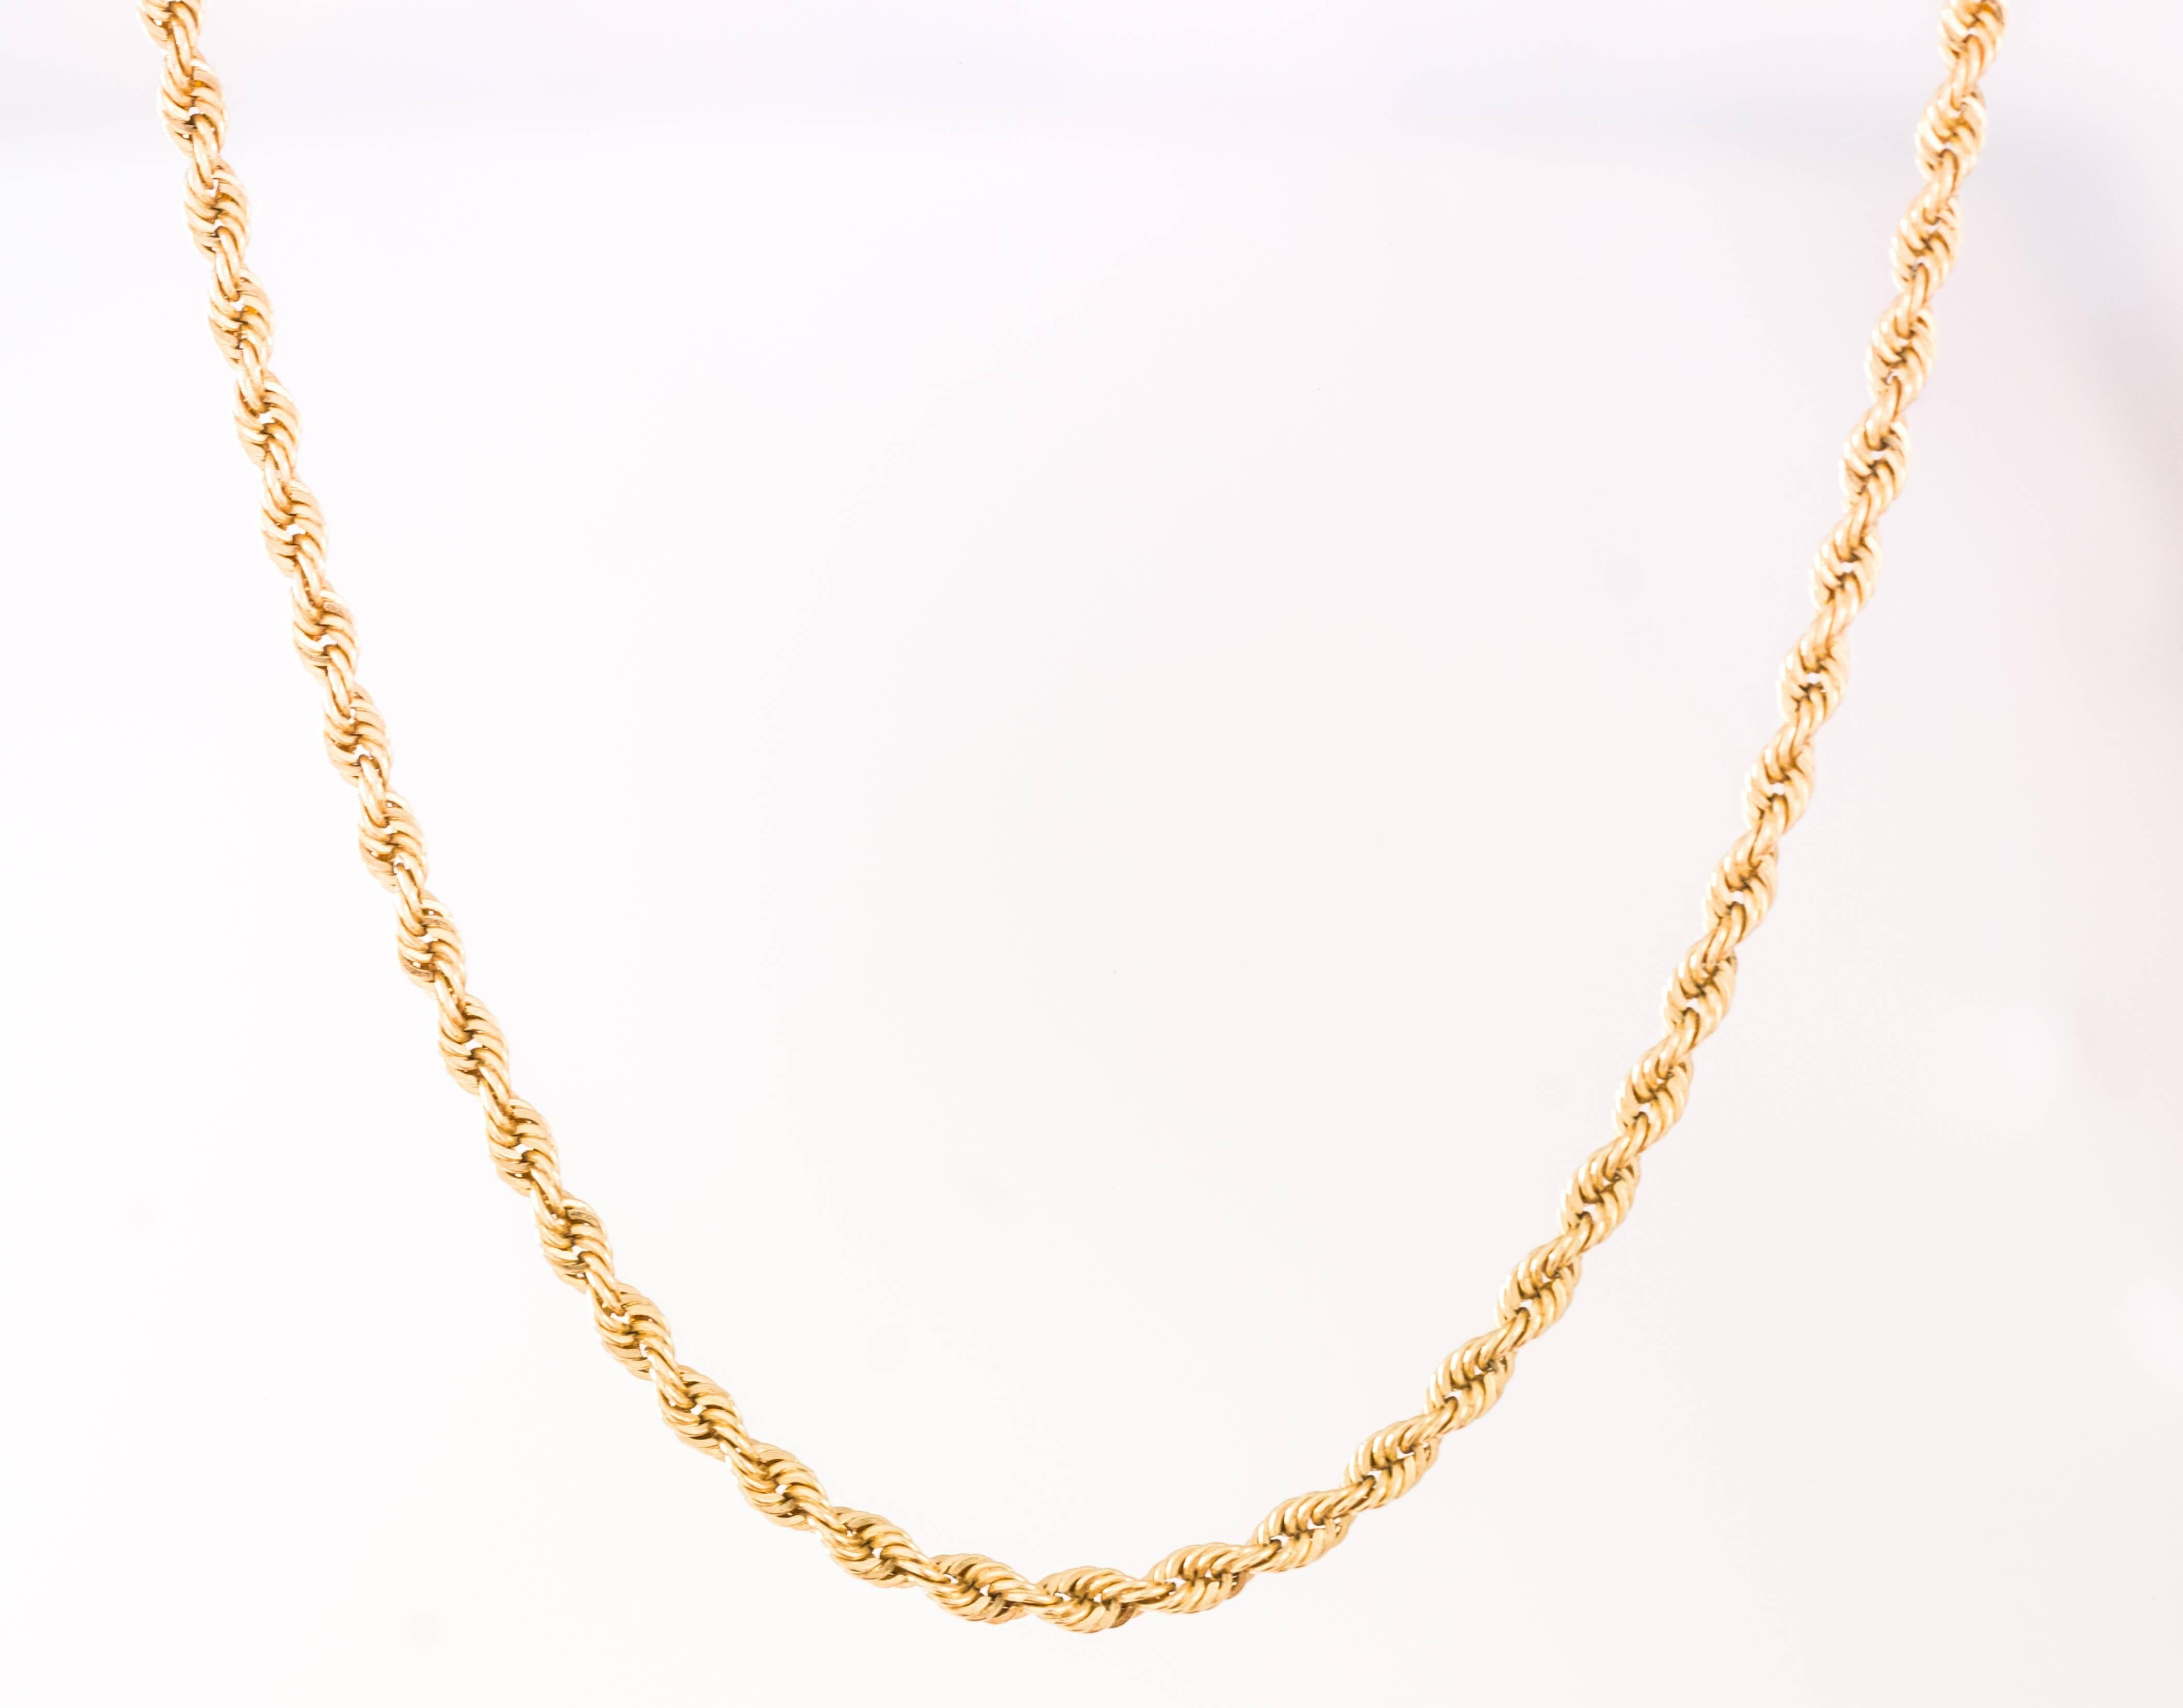 c9420344c Tiffany and Co. Classic Rope Chain 18K Gold Necklace For Sale at 1stdibs